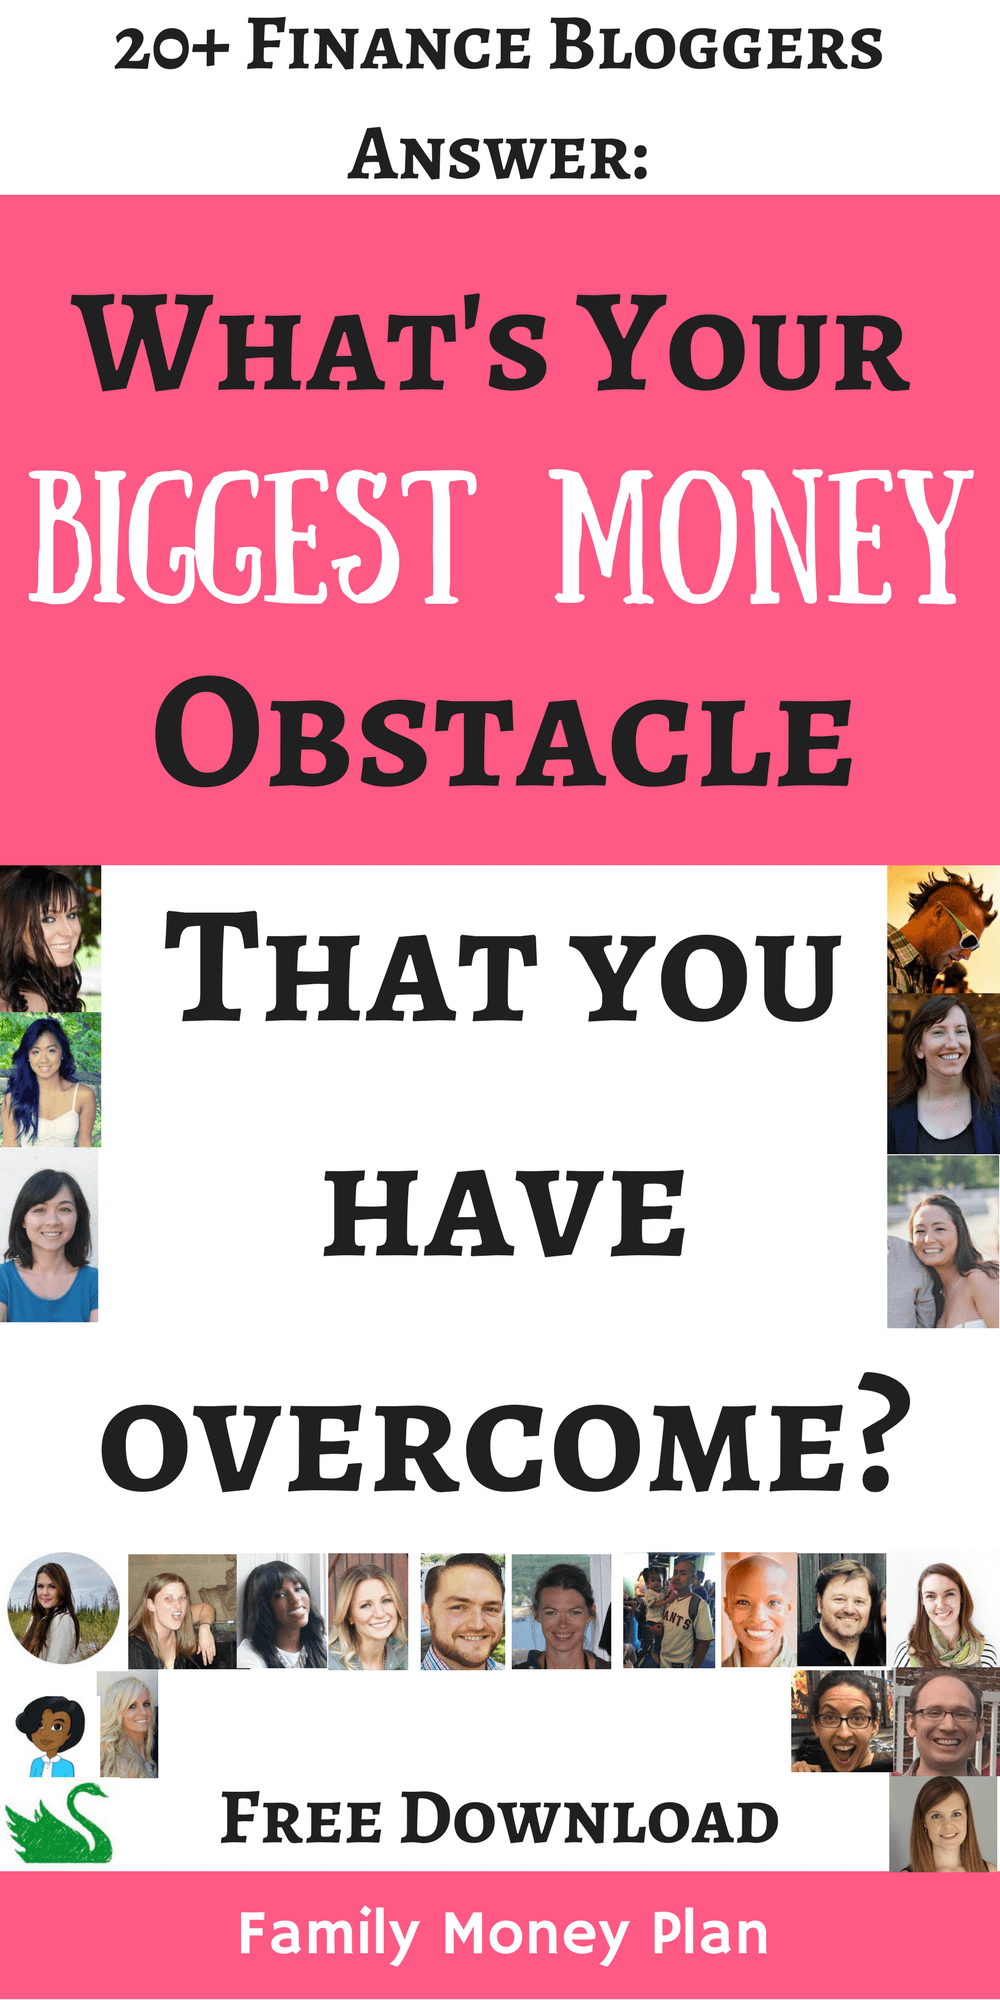 20+ Personal Finance Bloggers Answer: What is the biggest money obstacle you have overcome? | Saving Money | Debt Paydown | Free Download |